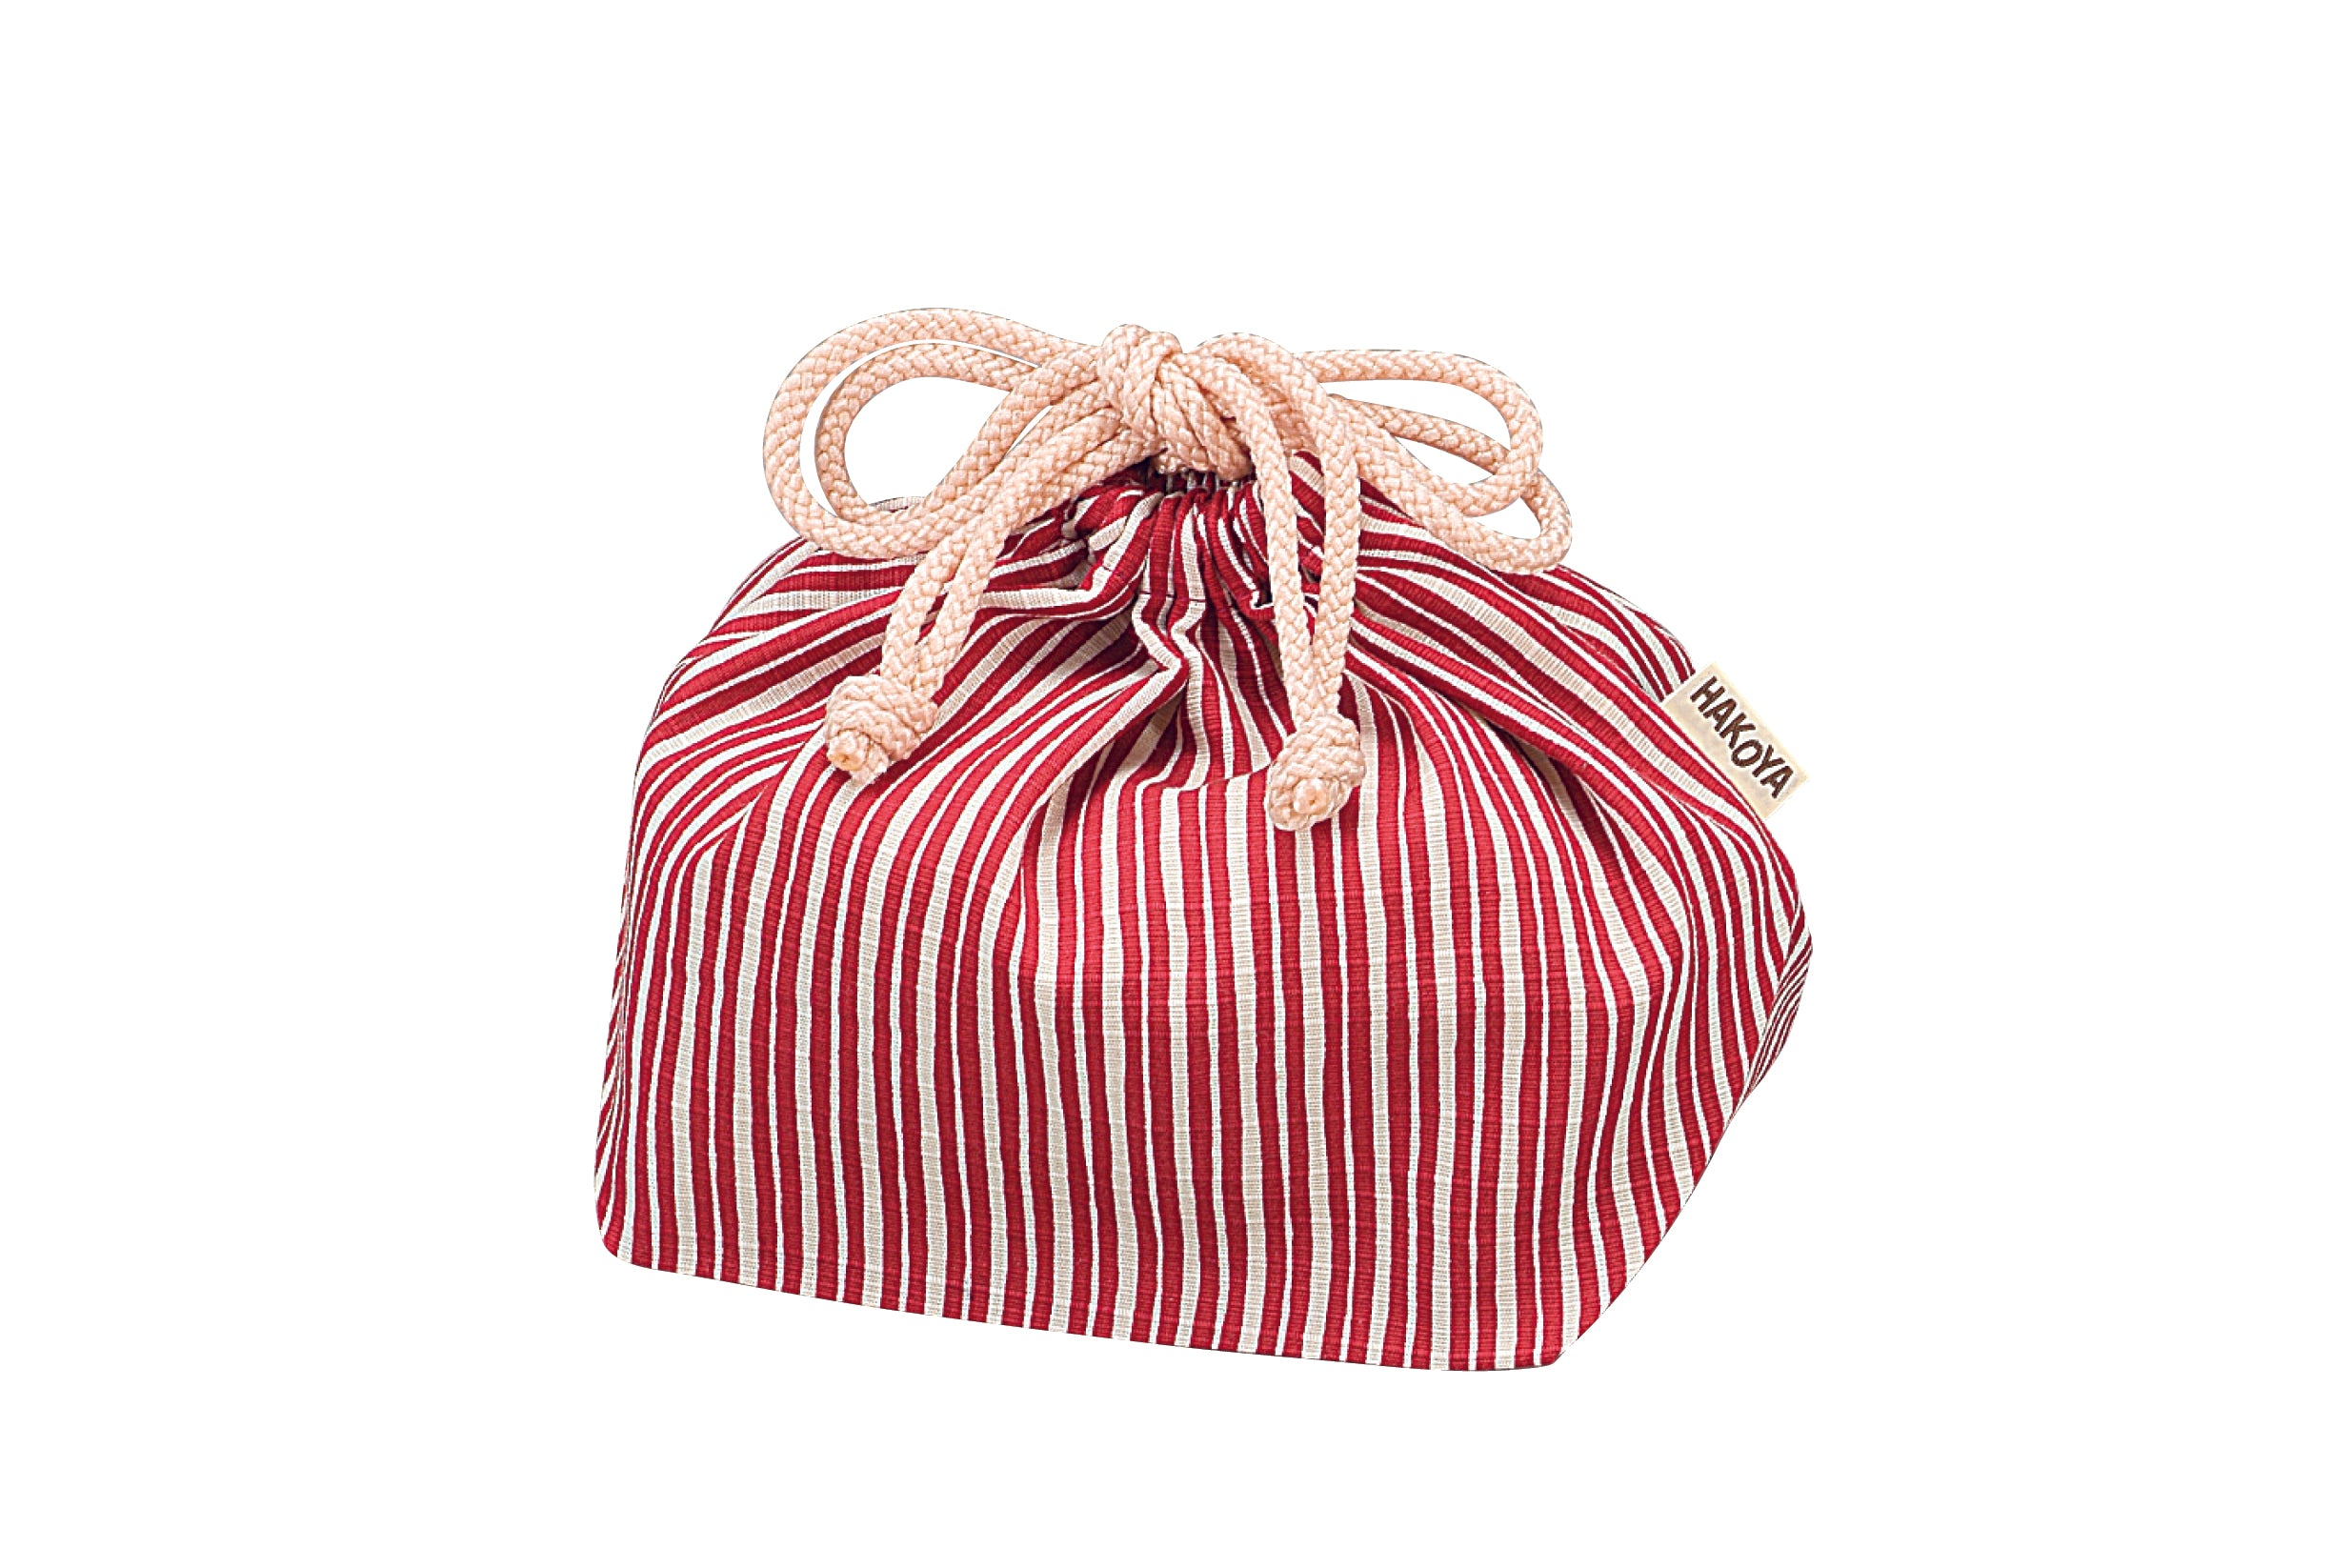 Tokusa Stripes Bag | Red by Hakoya - Bento&co Japanese Bento Lunch Boxes and Kitchenware Specialists